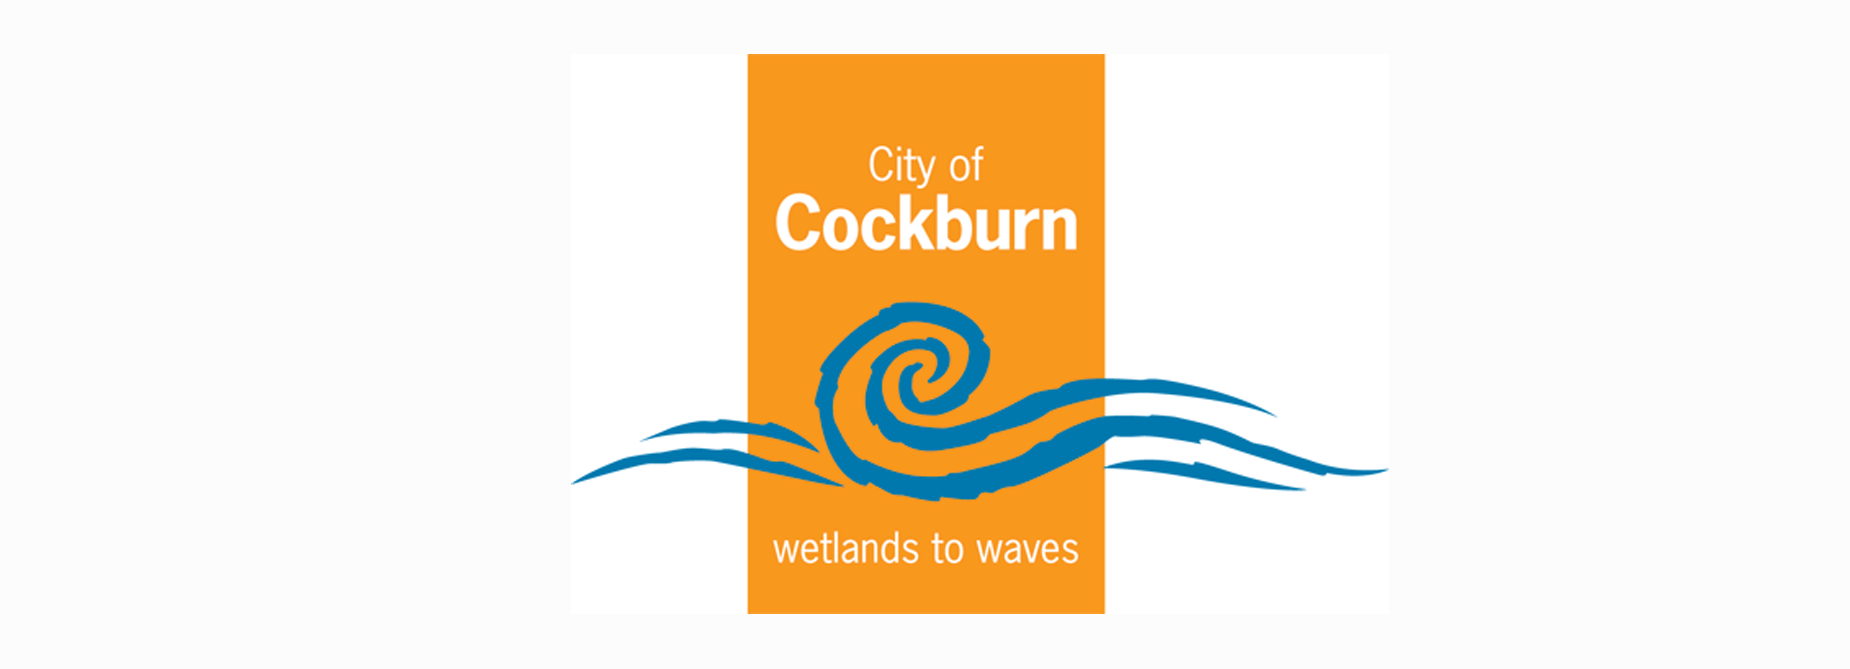 The City of Cockburn Logo